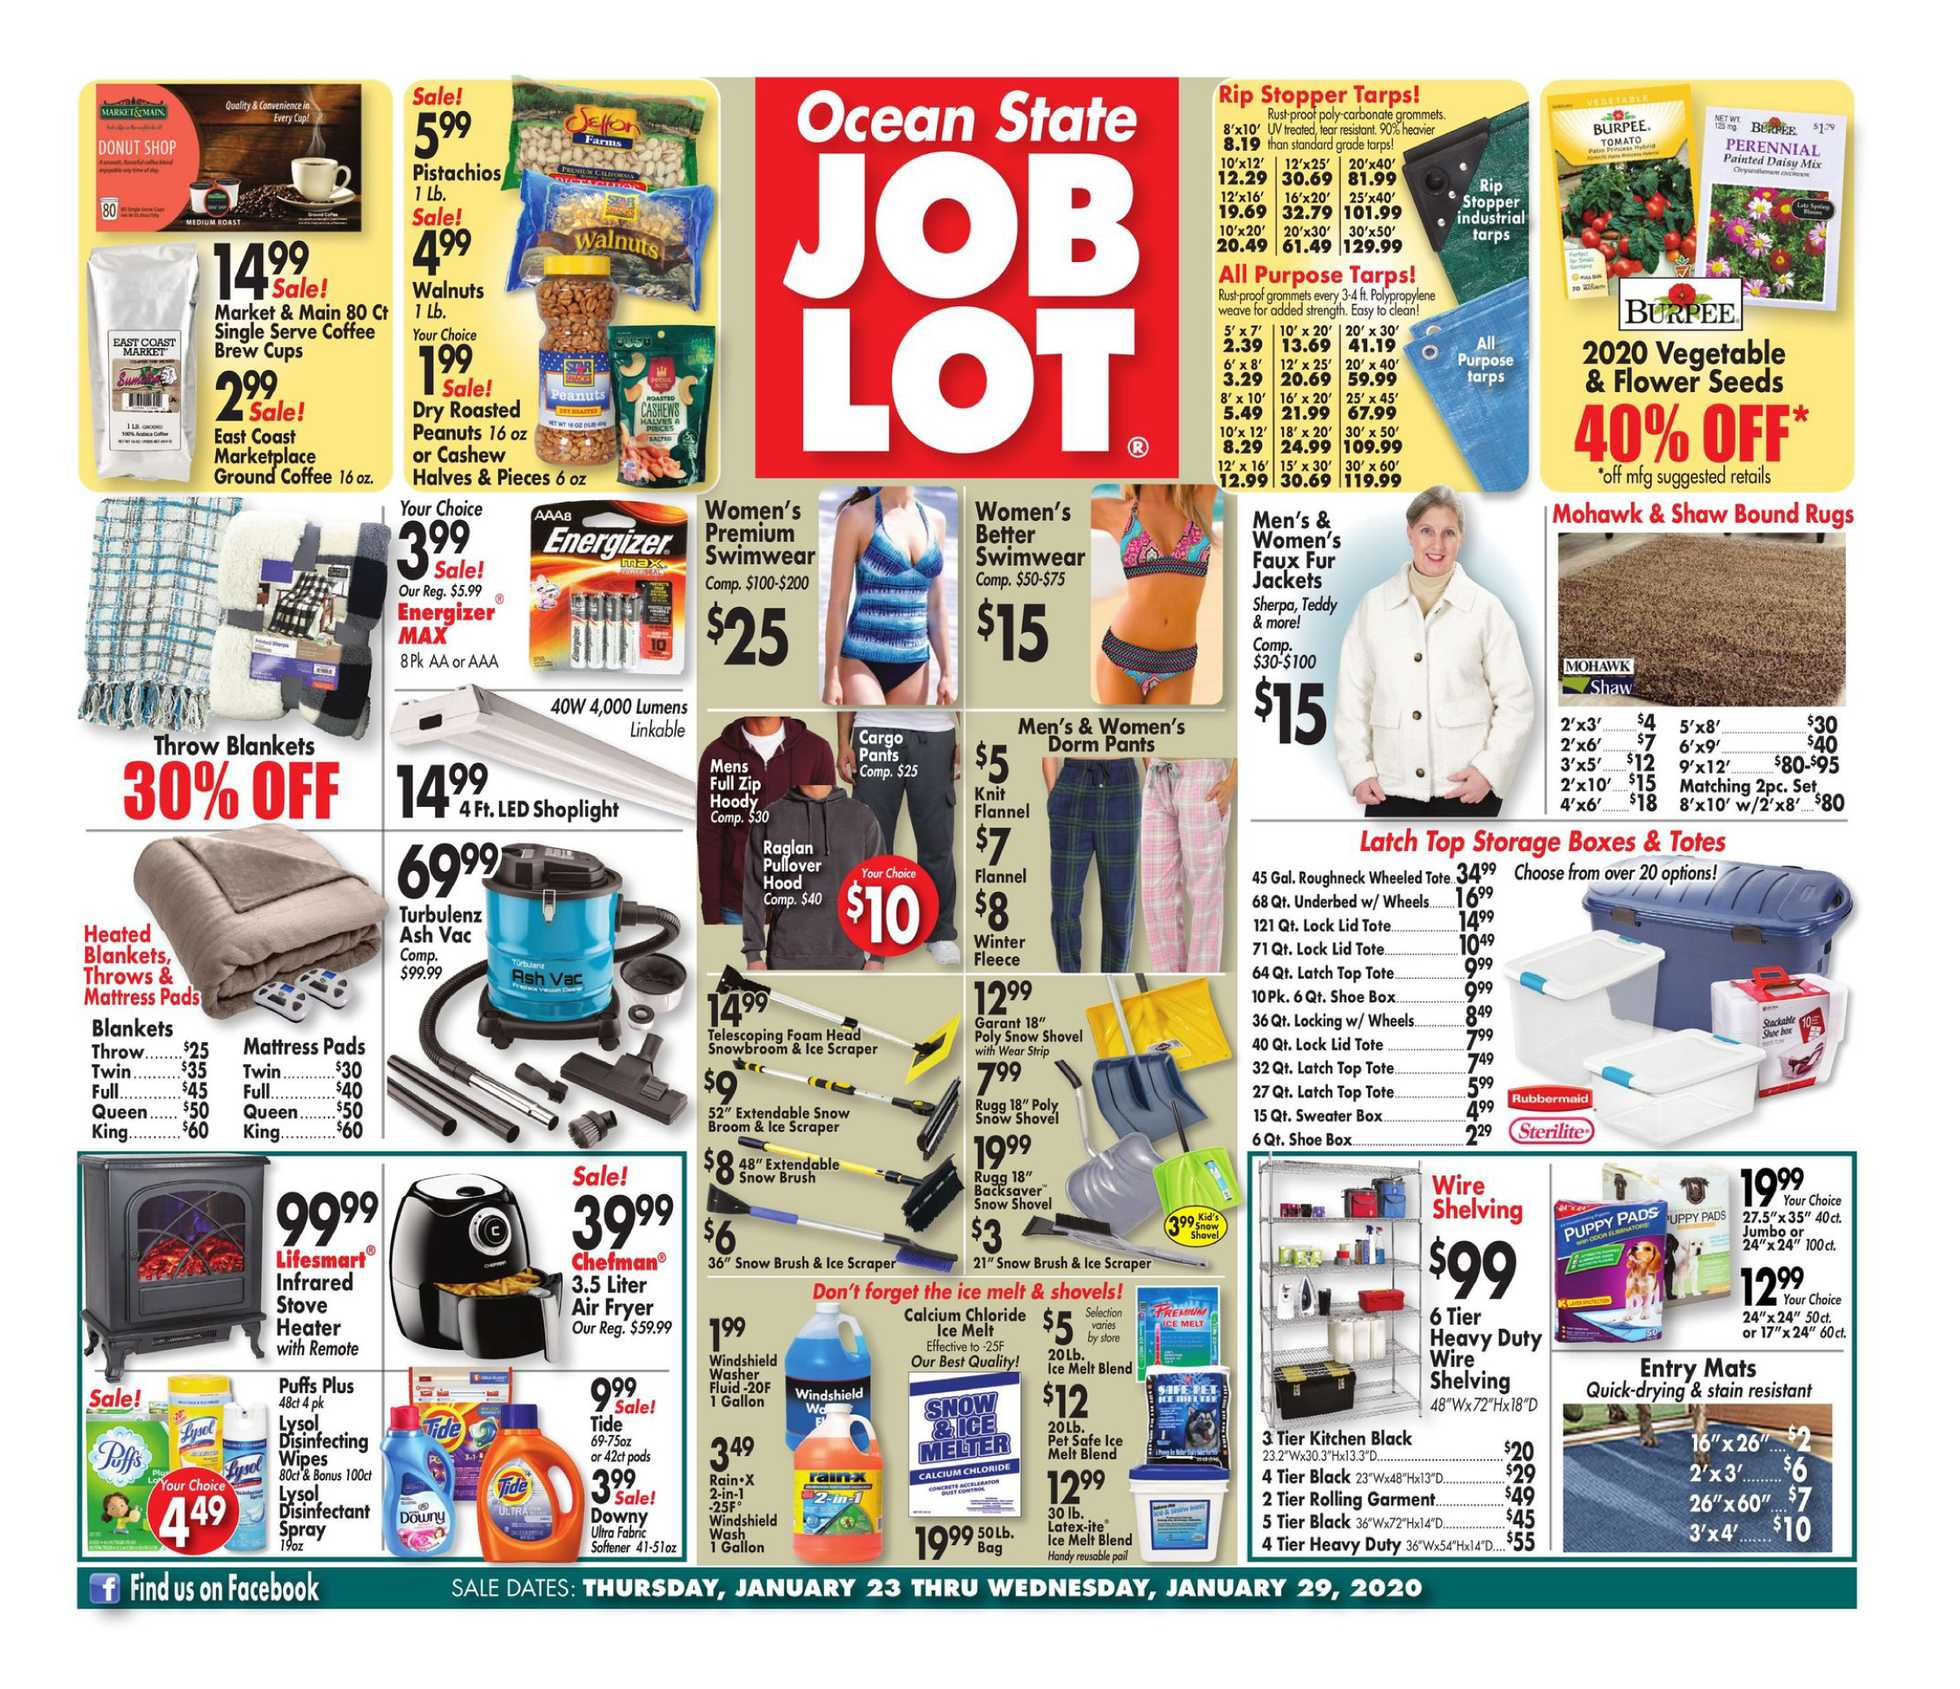 Ocean State Job Lot - promo starting from 01/23/20 to 01/29/20 - page 1.